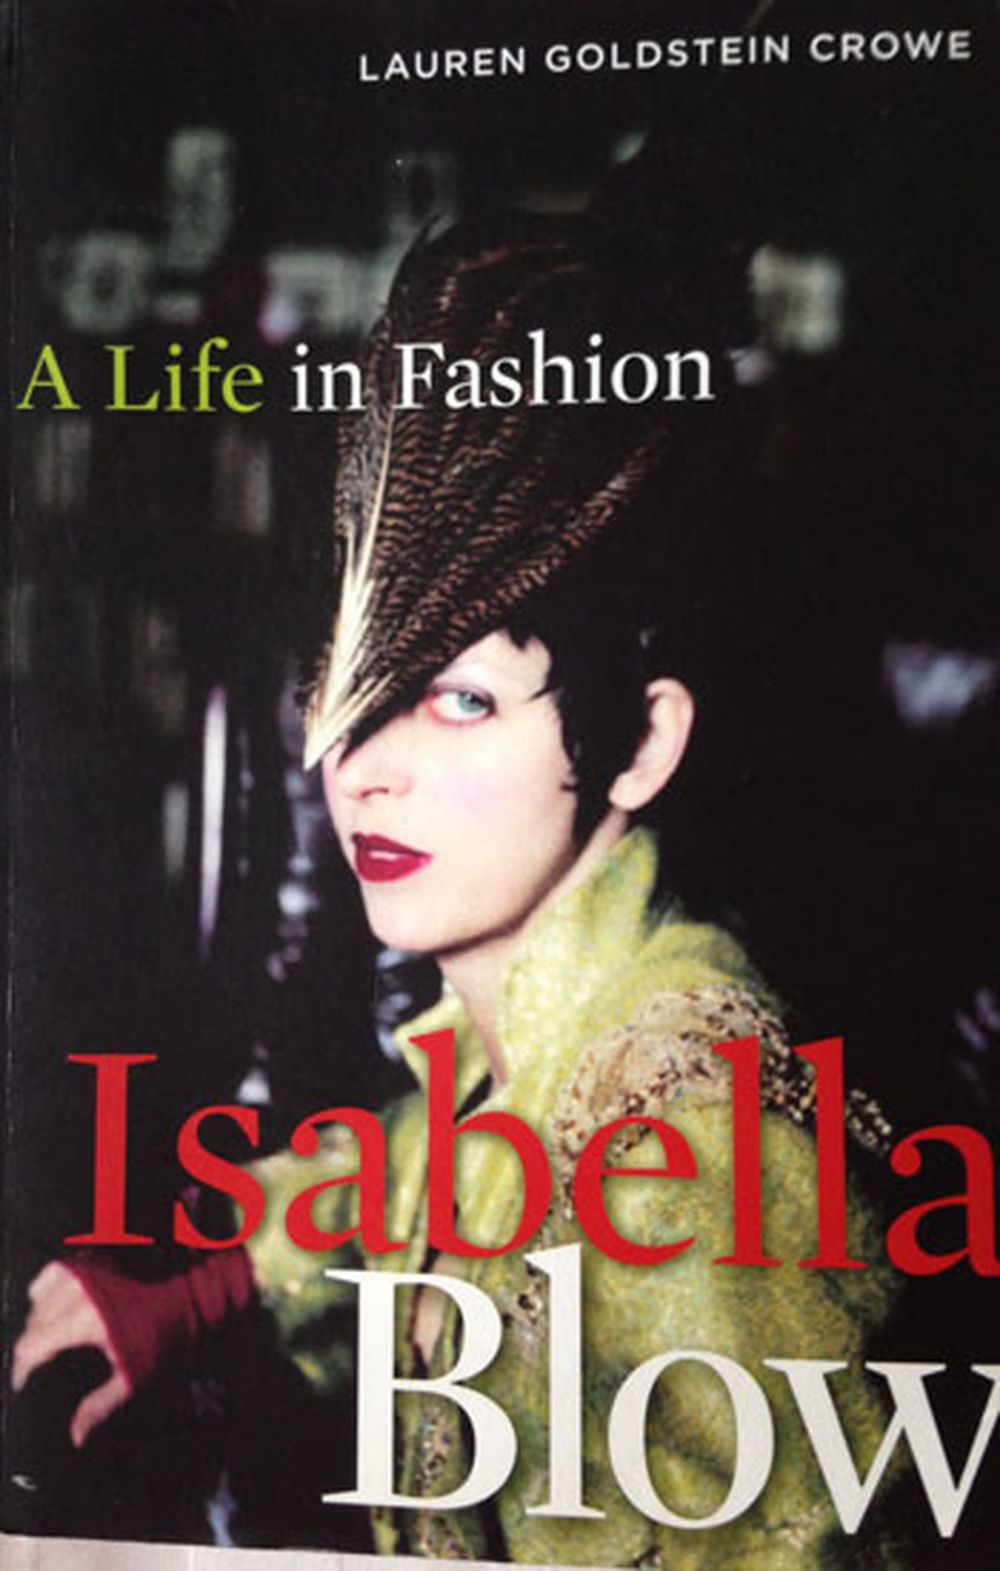 'A life in fashion', Lauren Goldstein Crowe